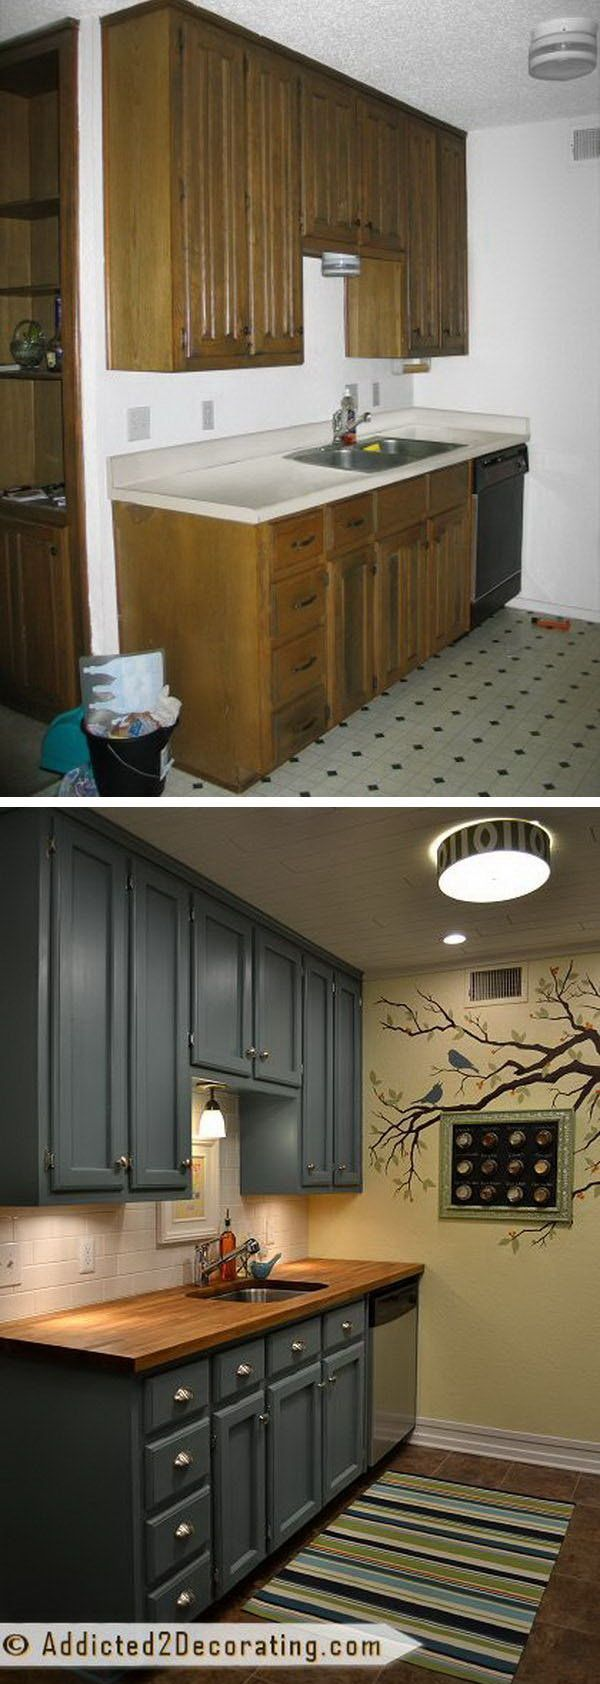 Surprising 17 Best Ideas About Small House Decorating On Pinterest Small Largest Home Design Picture Inspirations Pitcheantrous